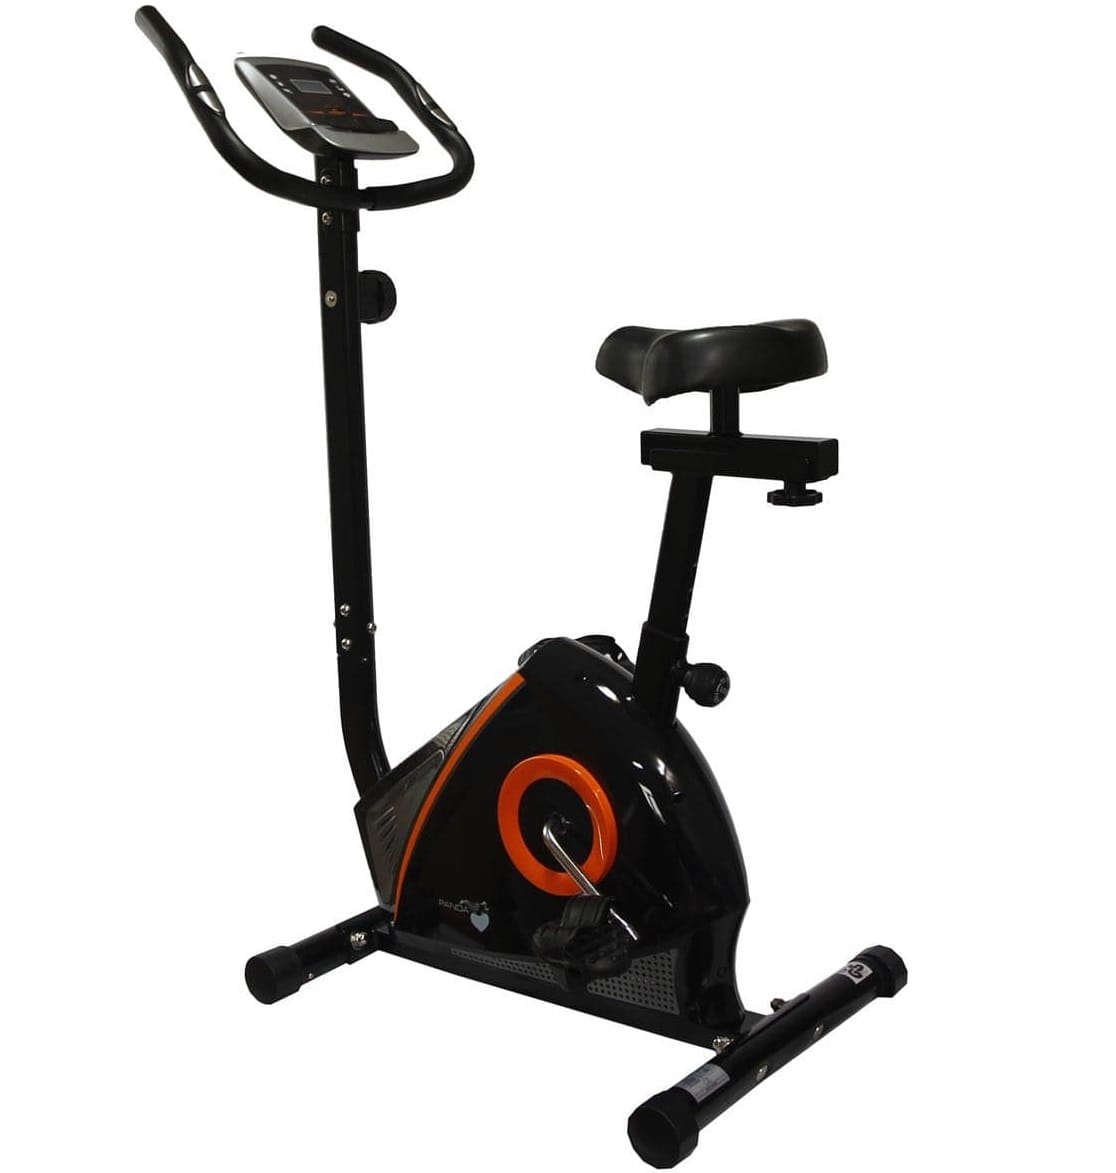 Panda B3130 Stationary Bike